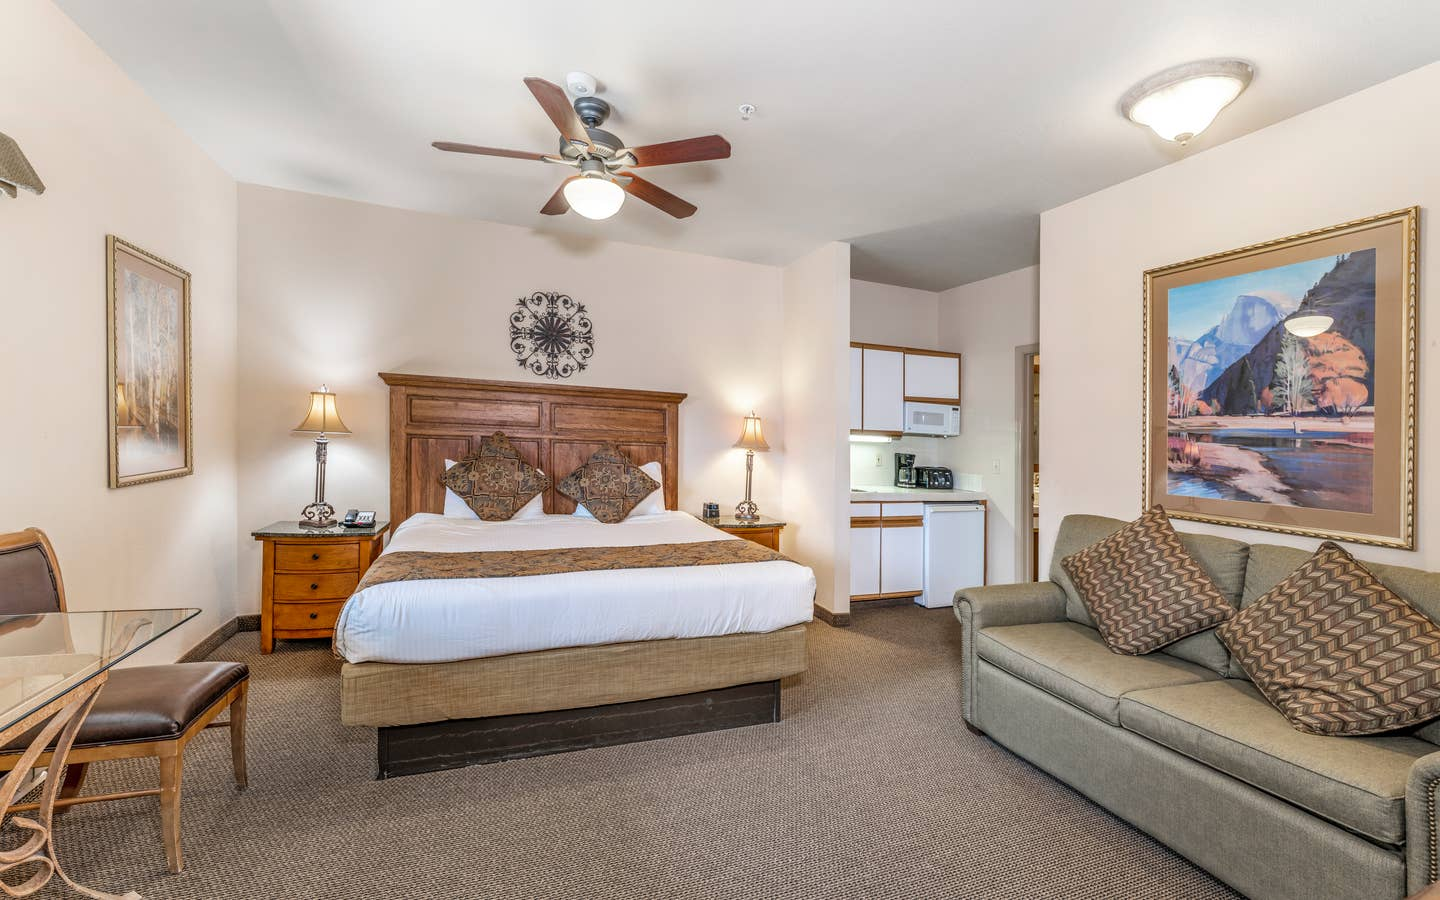 Bed and living area in a Ridge Pointe villa at Tahoe Ridge Resort